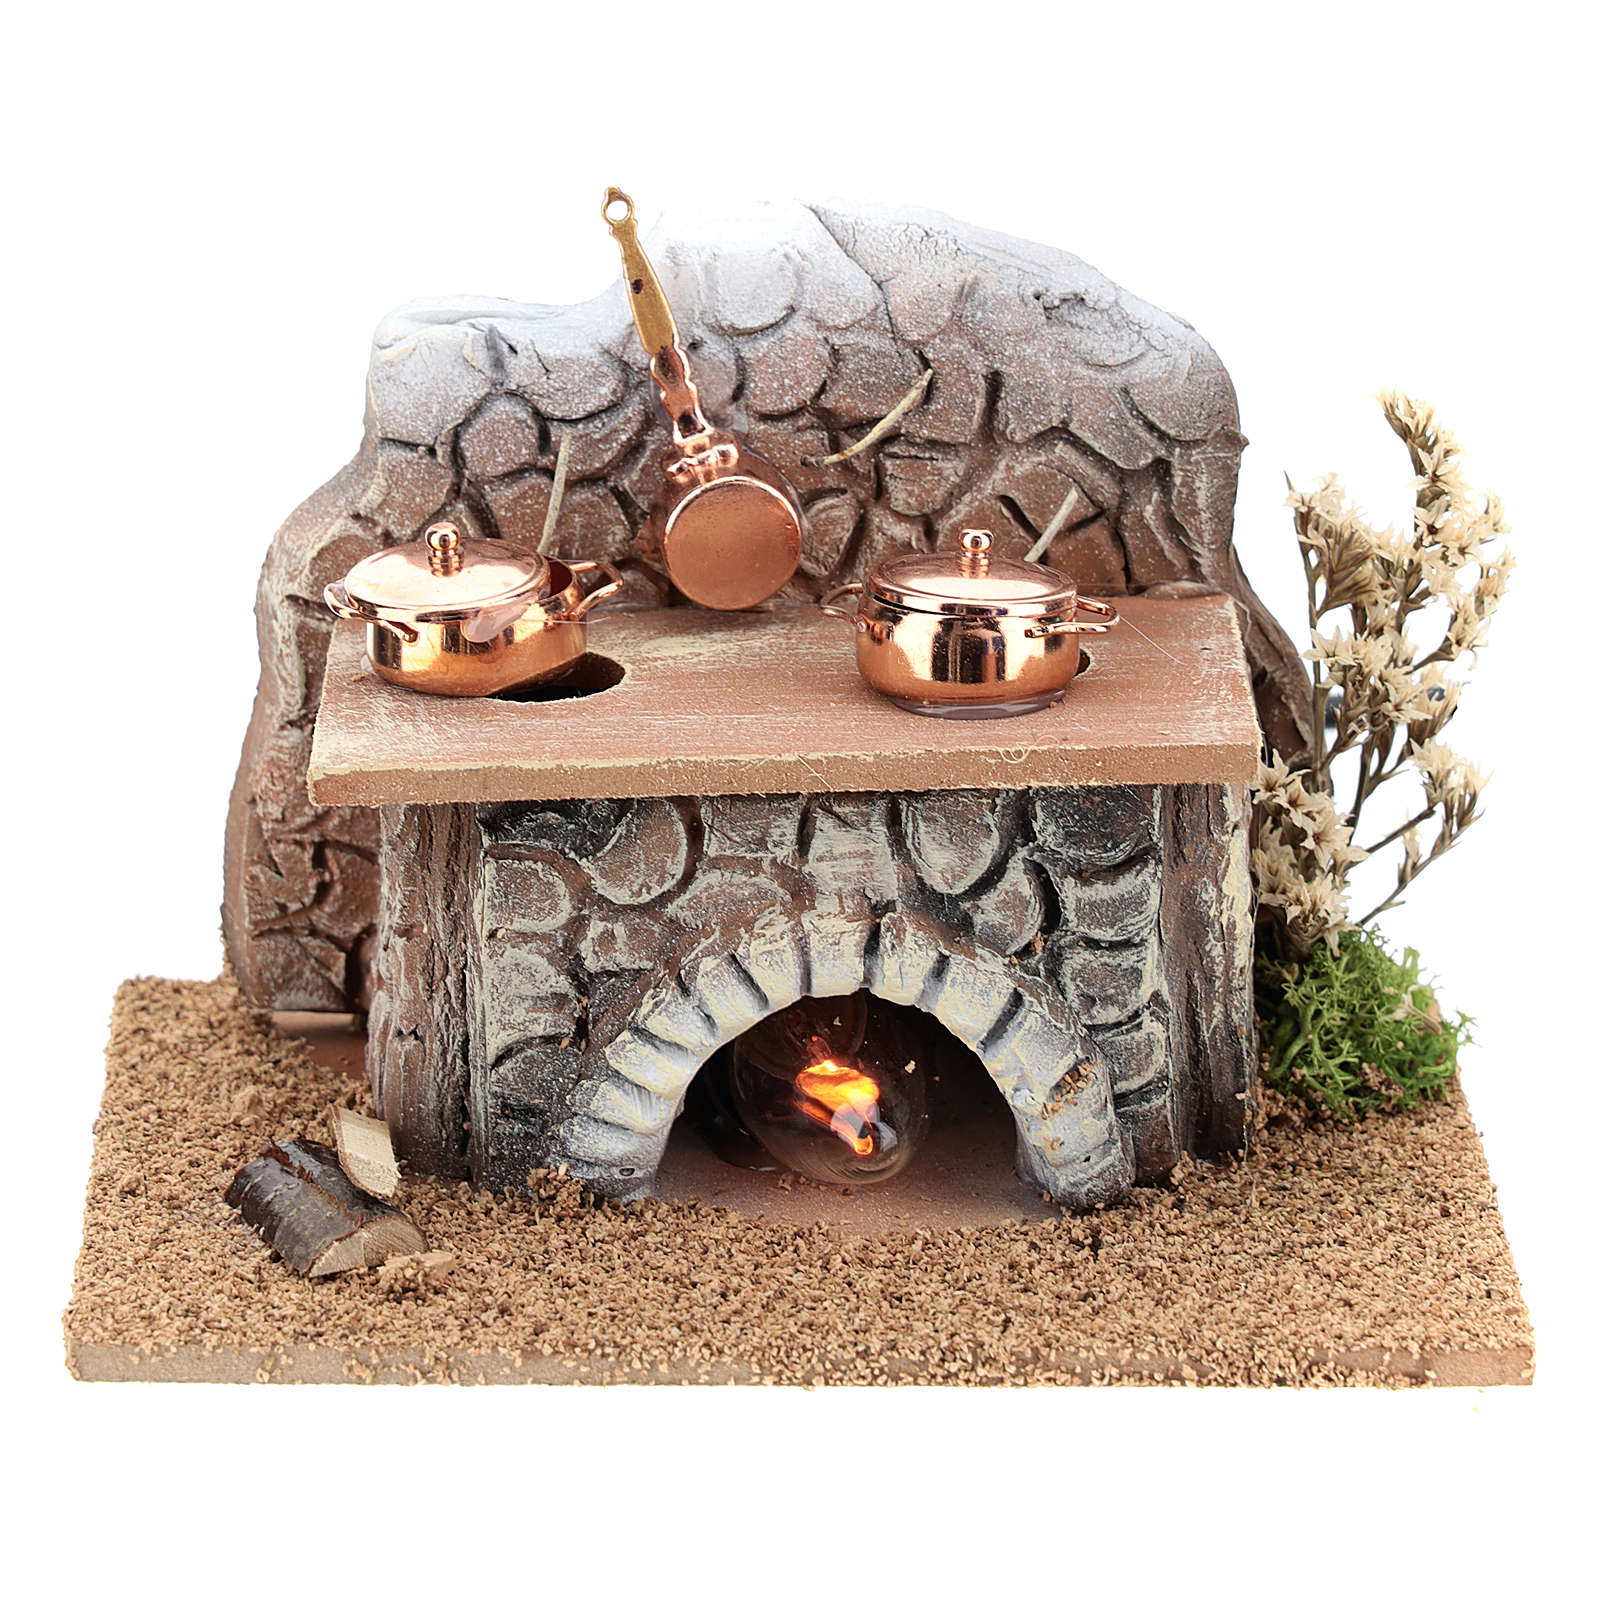 Oven with pans and fire 15x10x10 cm for Nativity Scenes of 8-10 cm 4